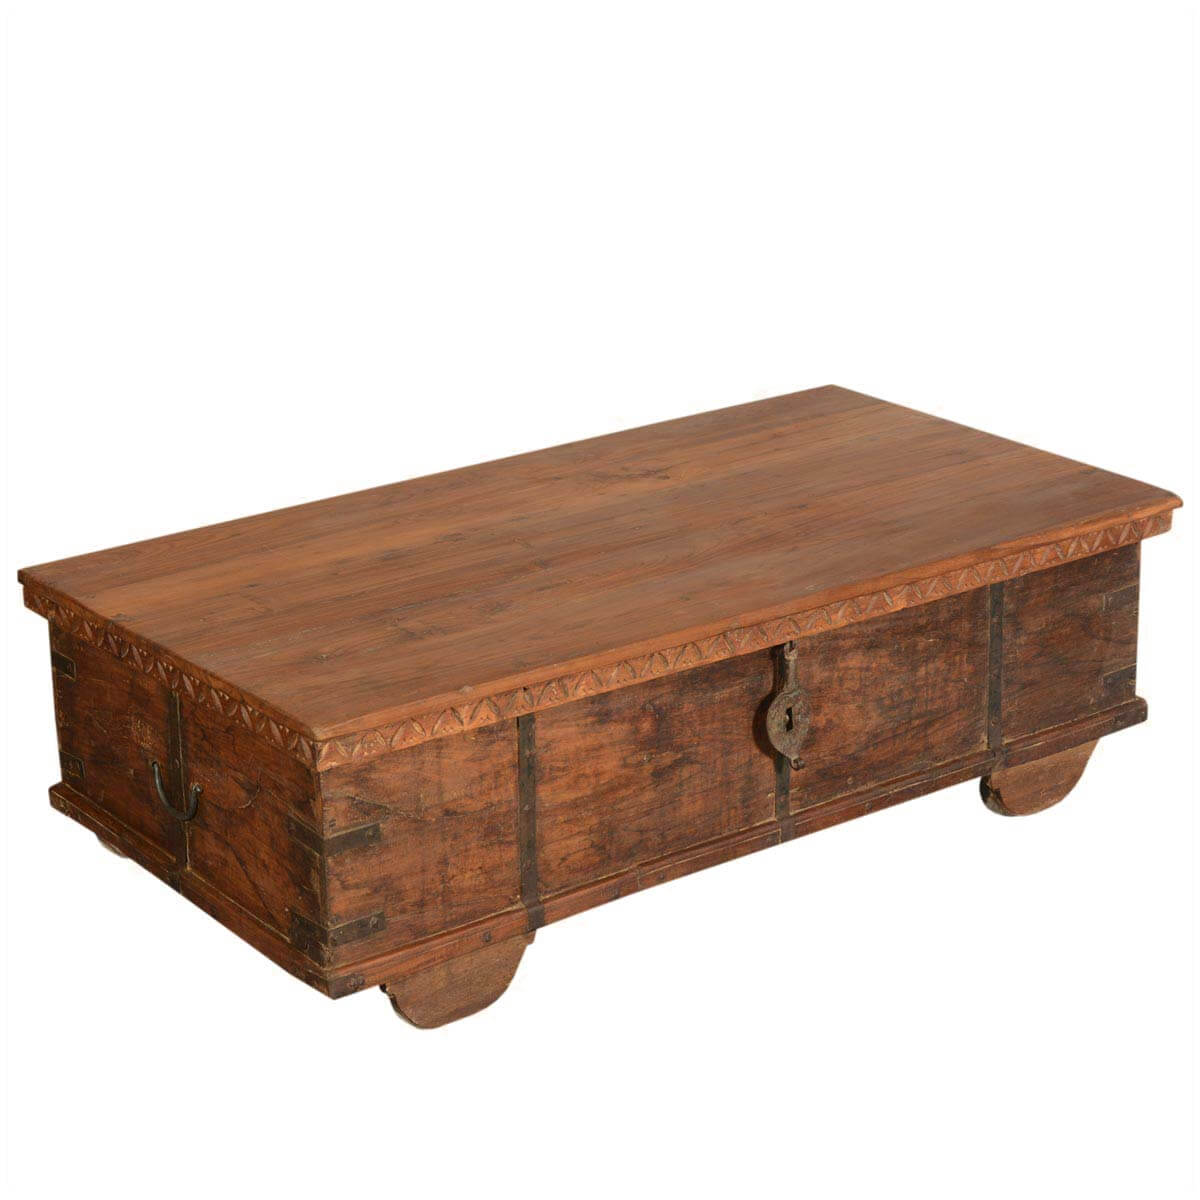 Langley reclaimed wood rustic metal accent storage trunk coffee table Rustic wooden coffee tables